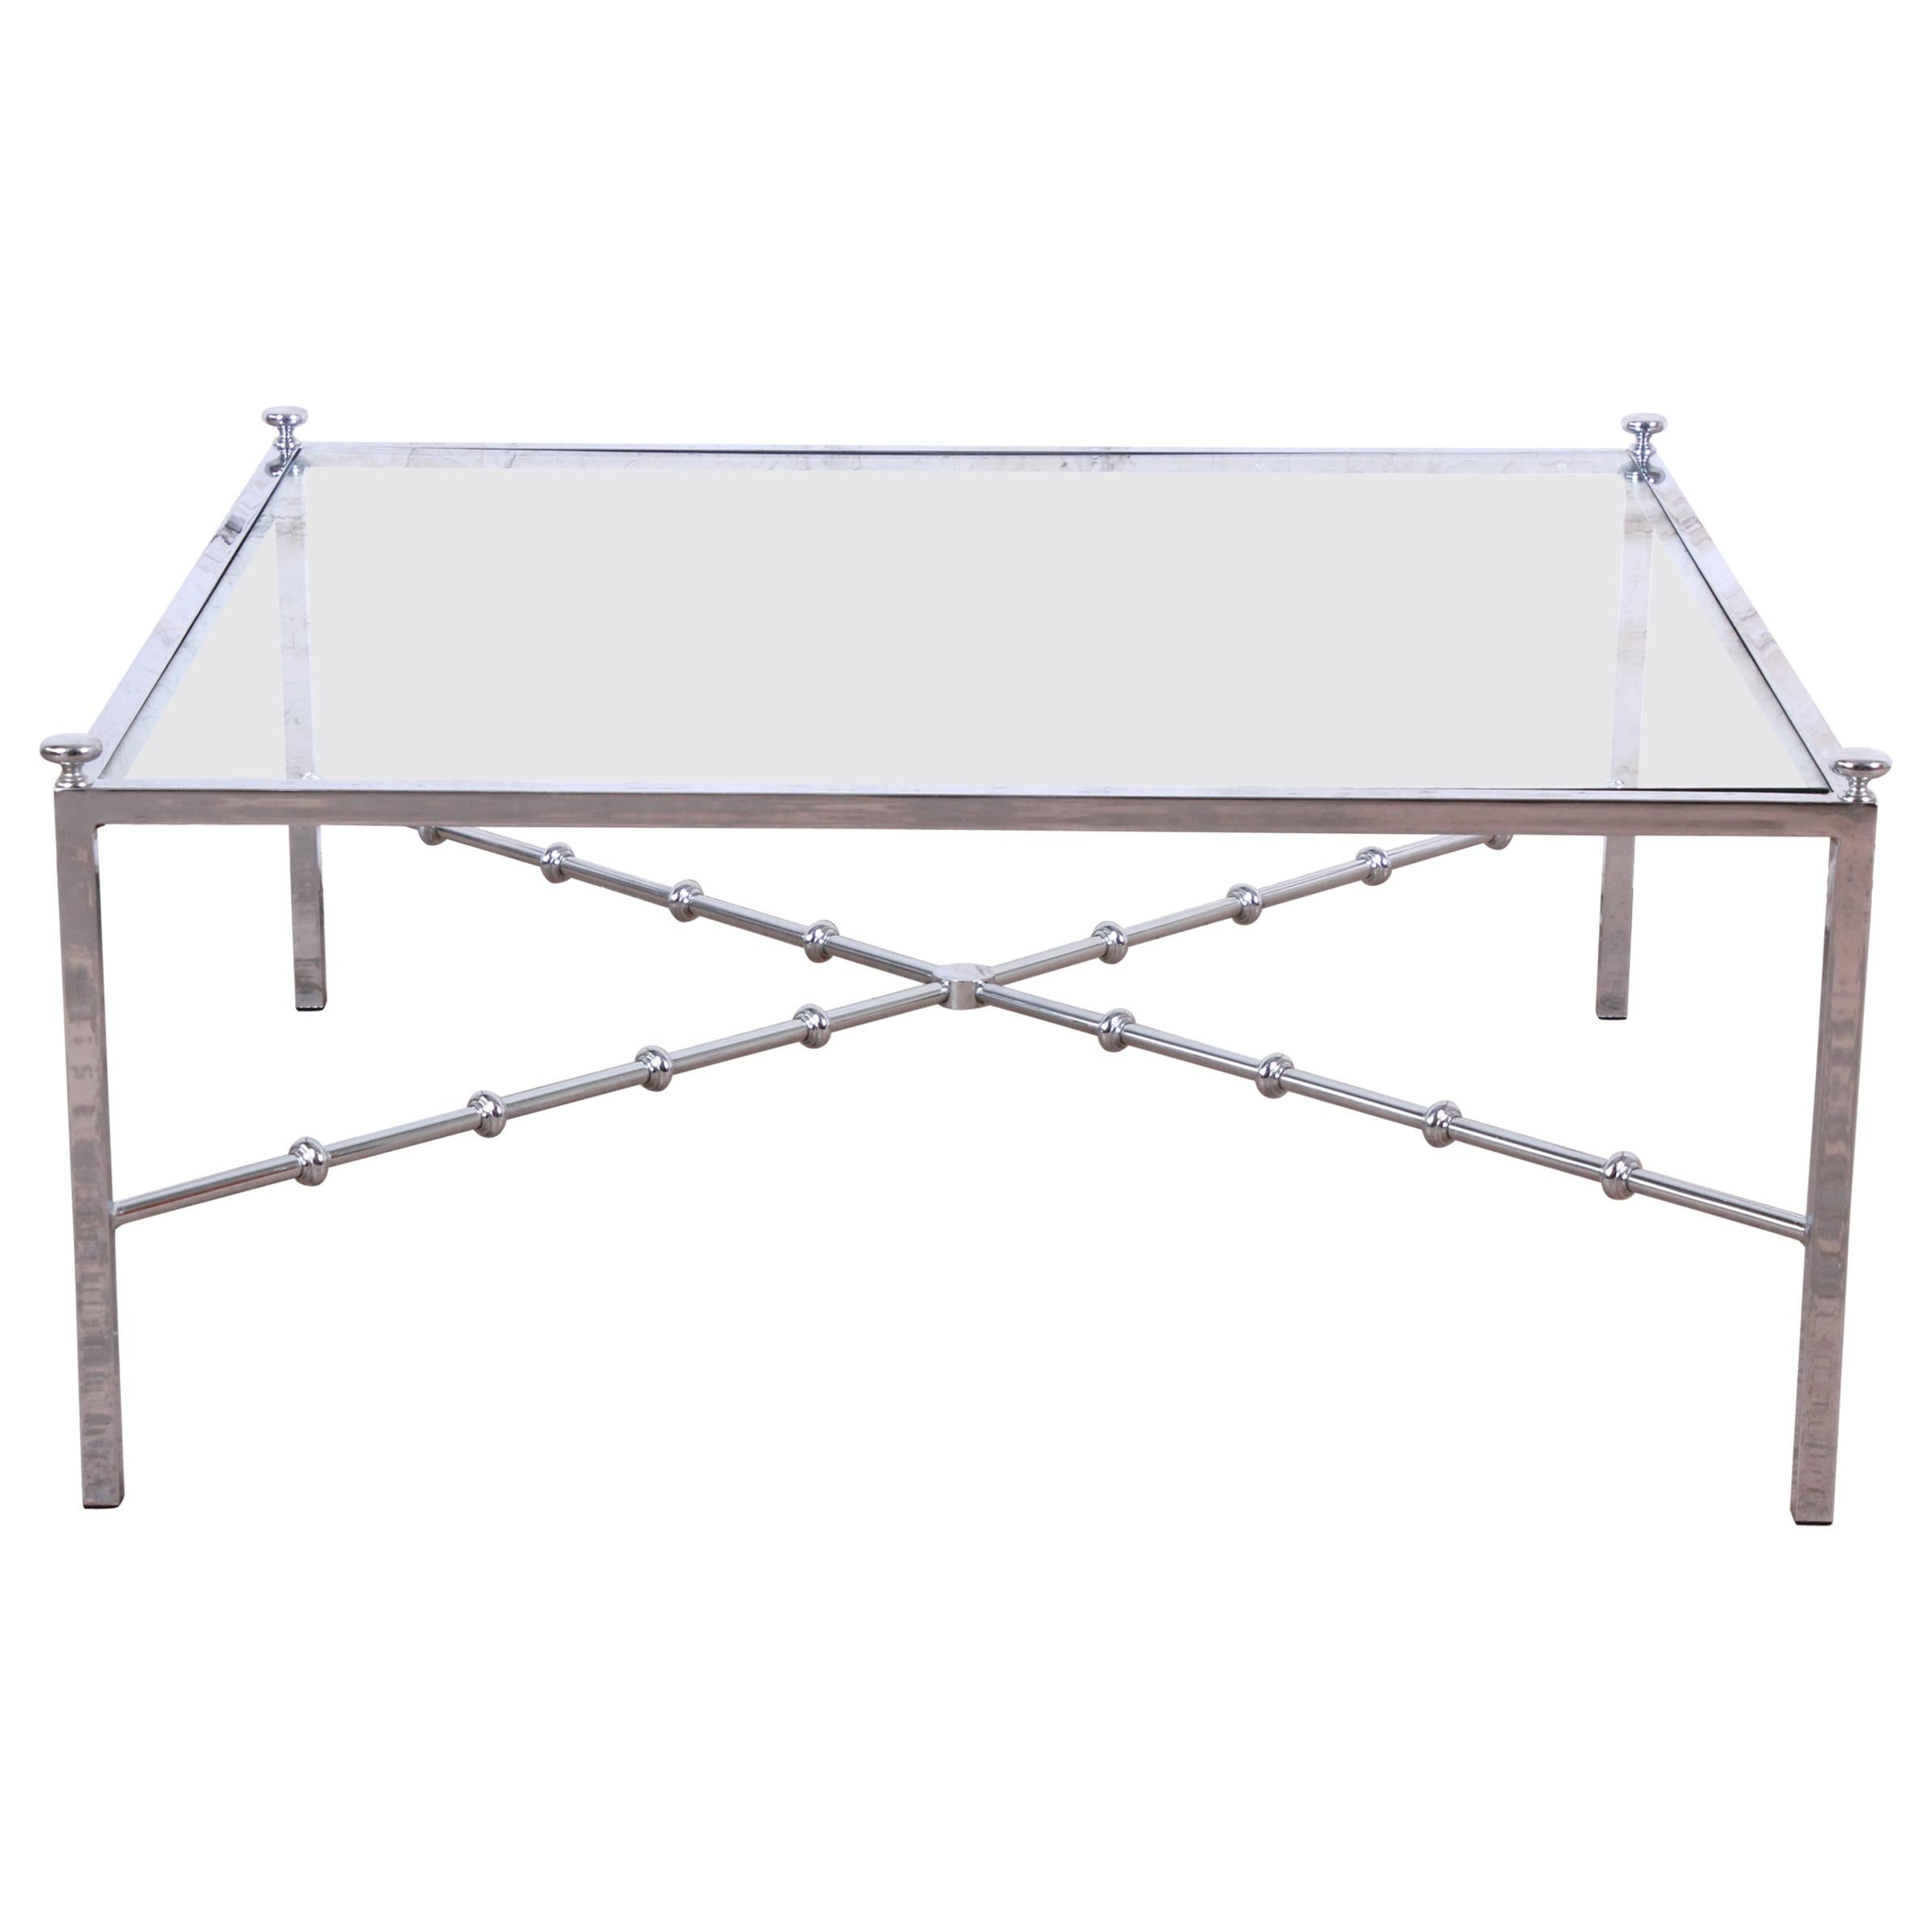 Tommi Parzinger Midcentury Hollywood Regency Chrome and Glass Cocktail Table